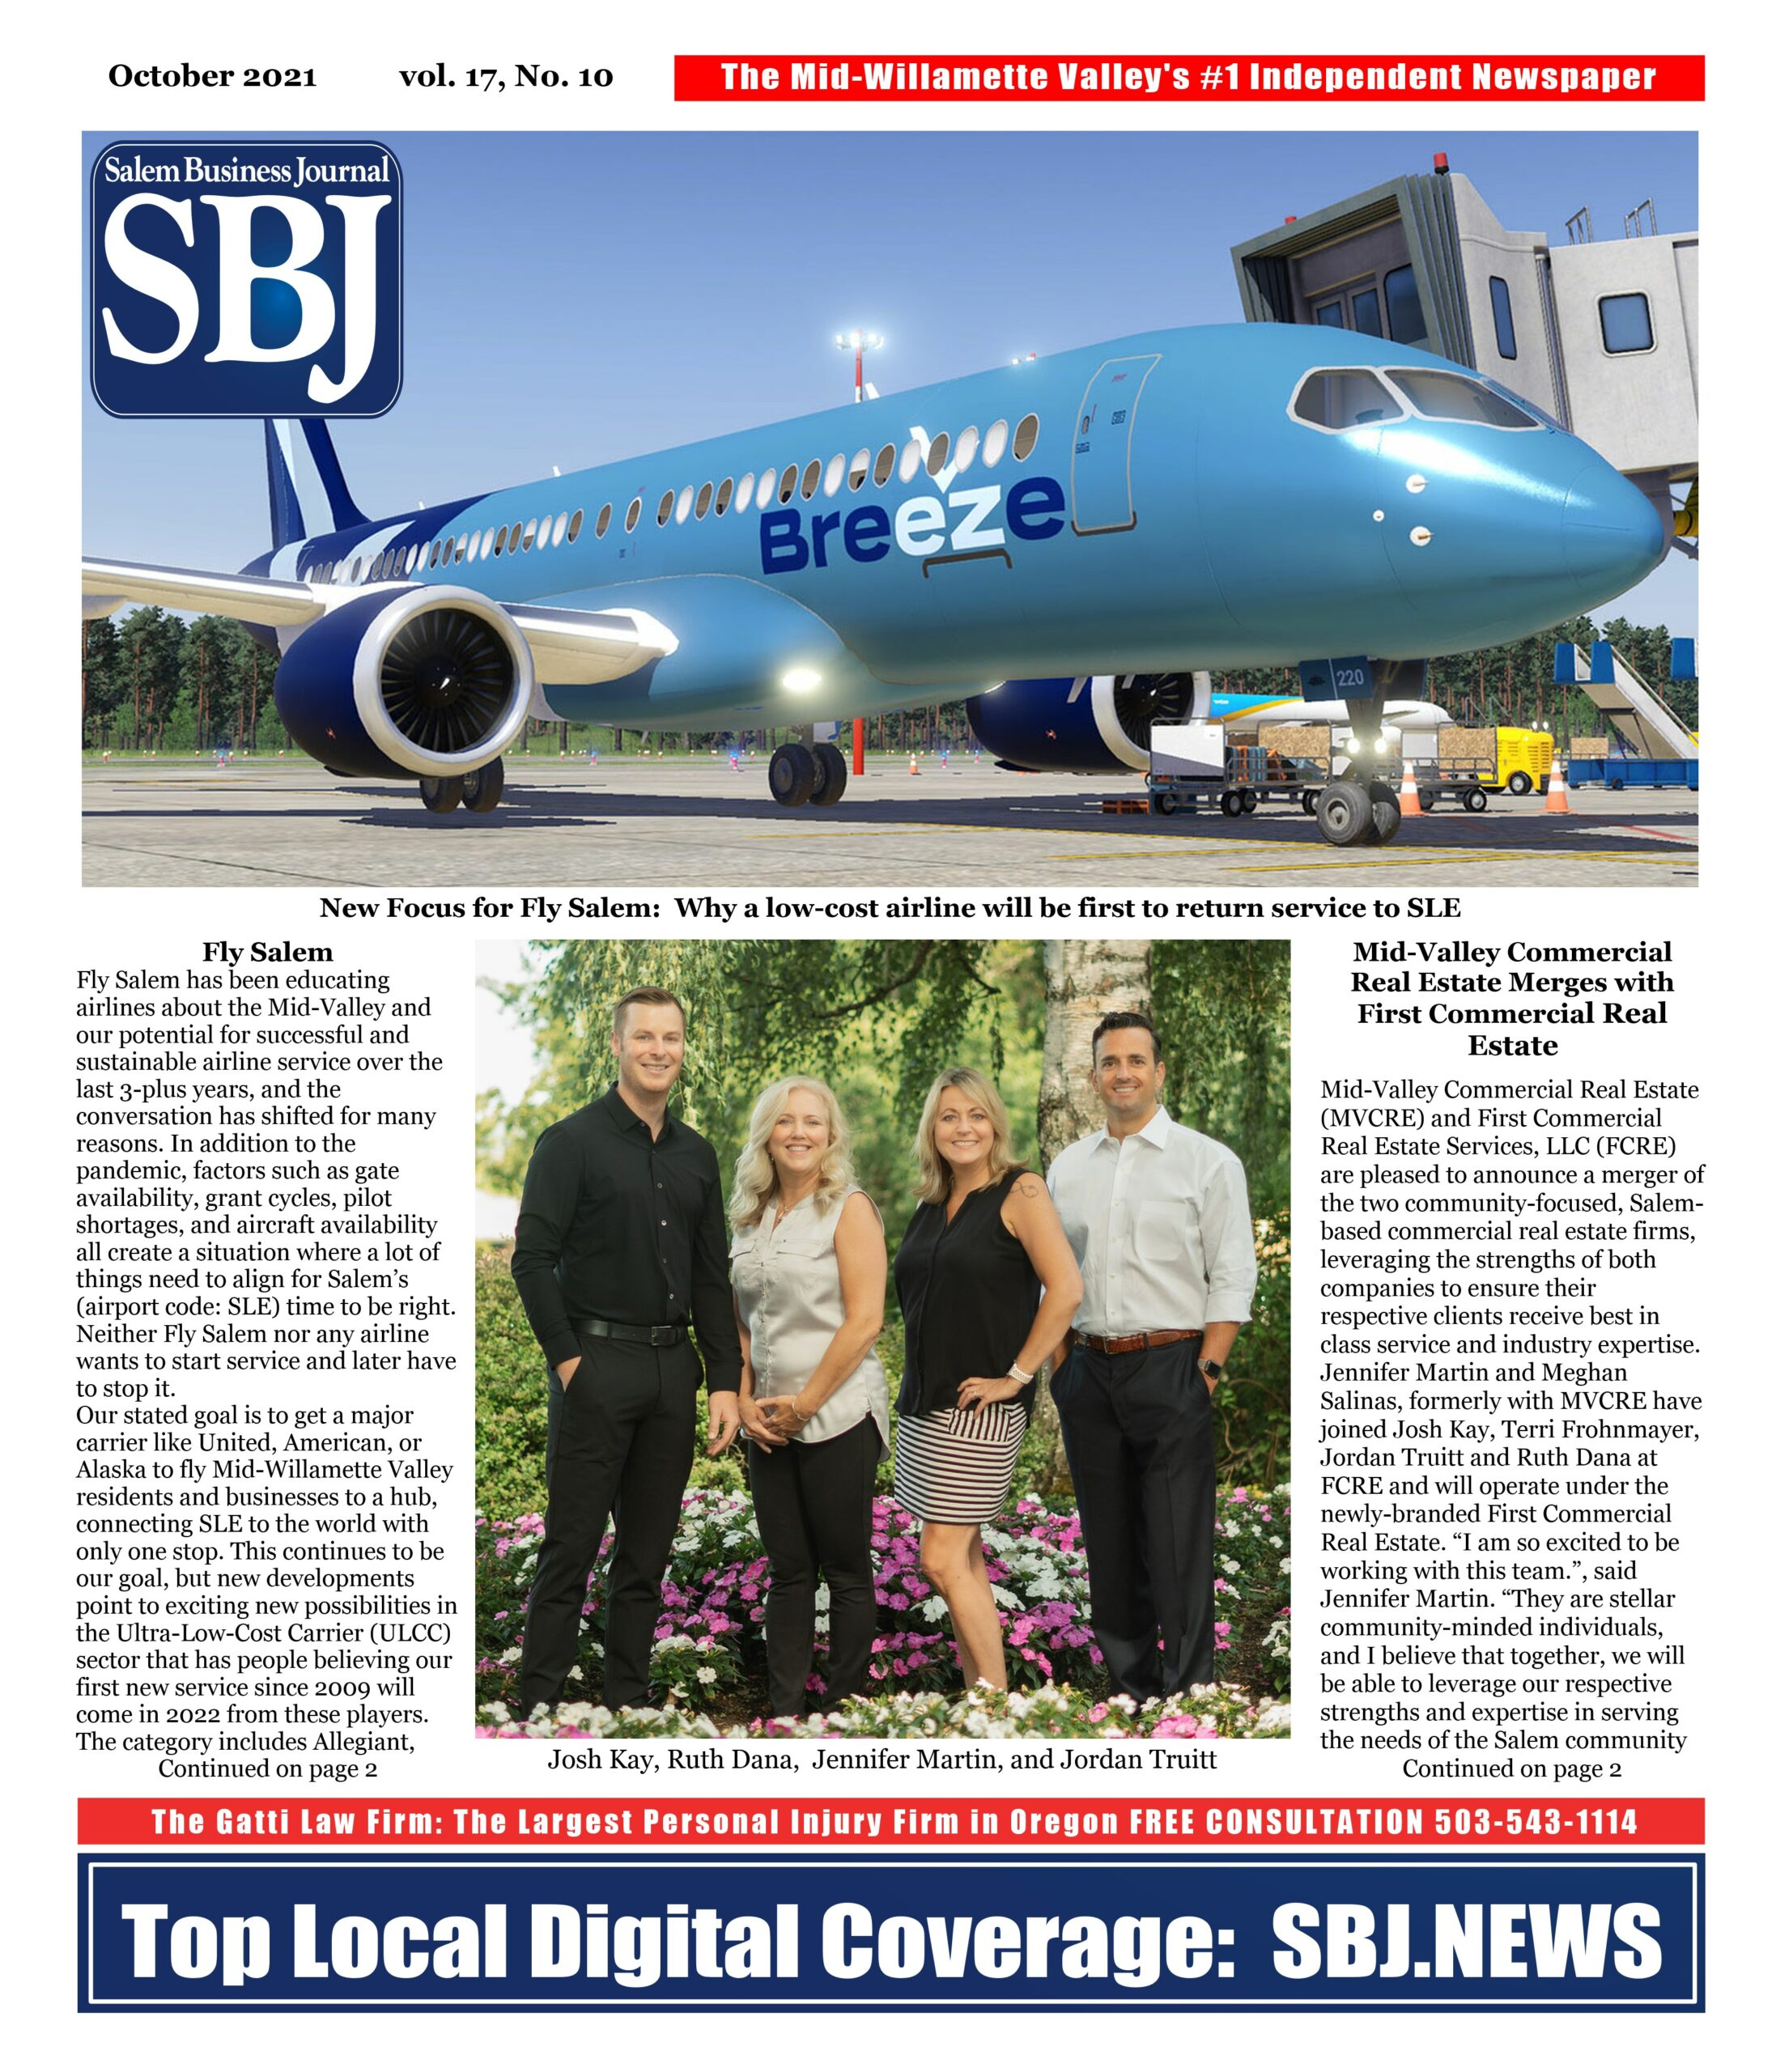 sbj102021cover